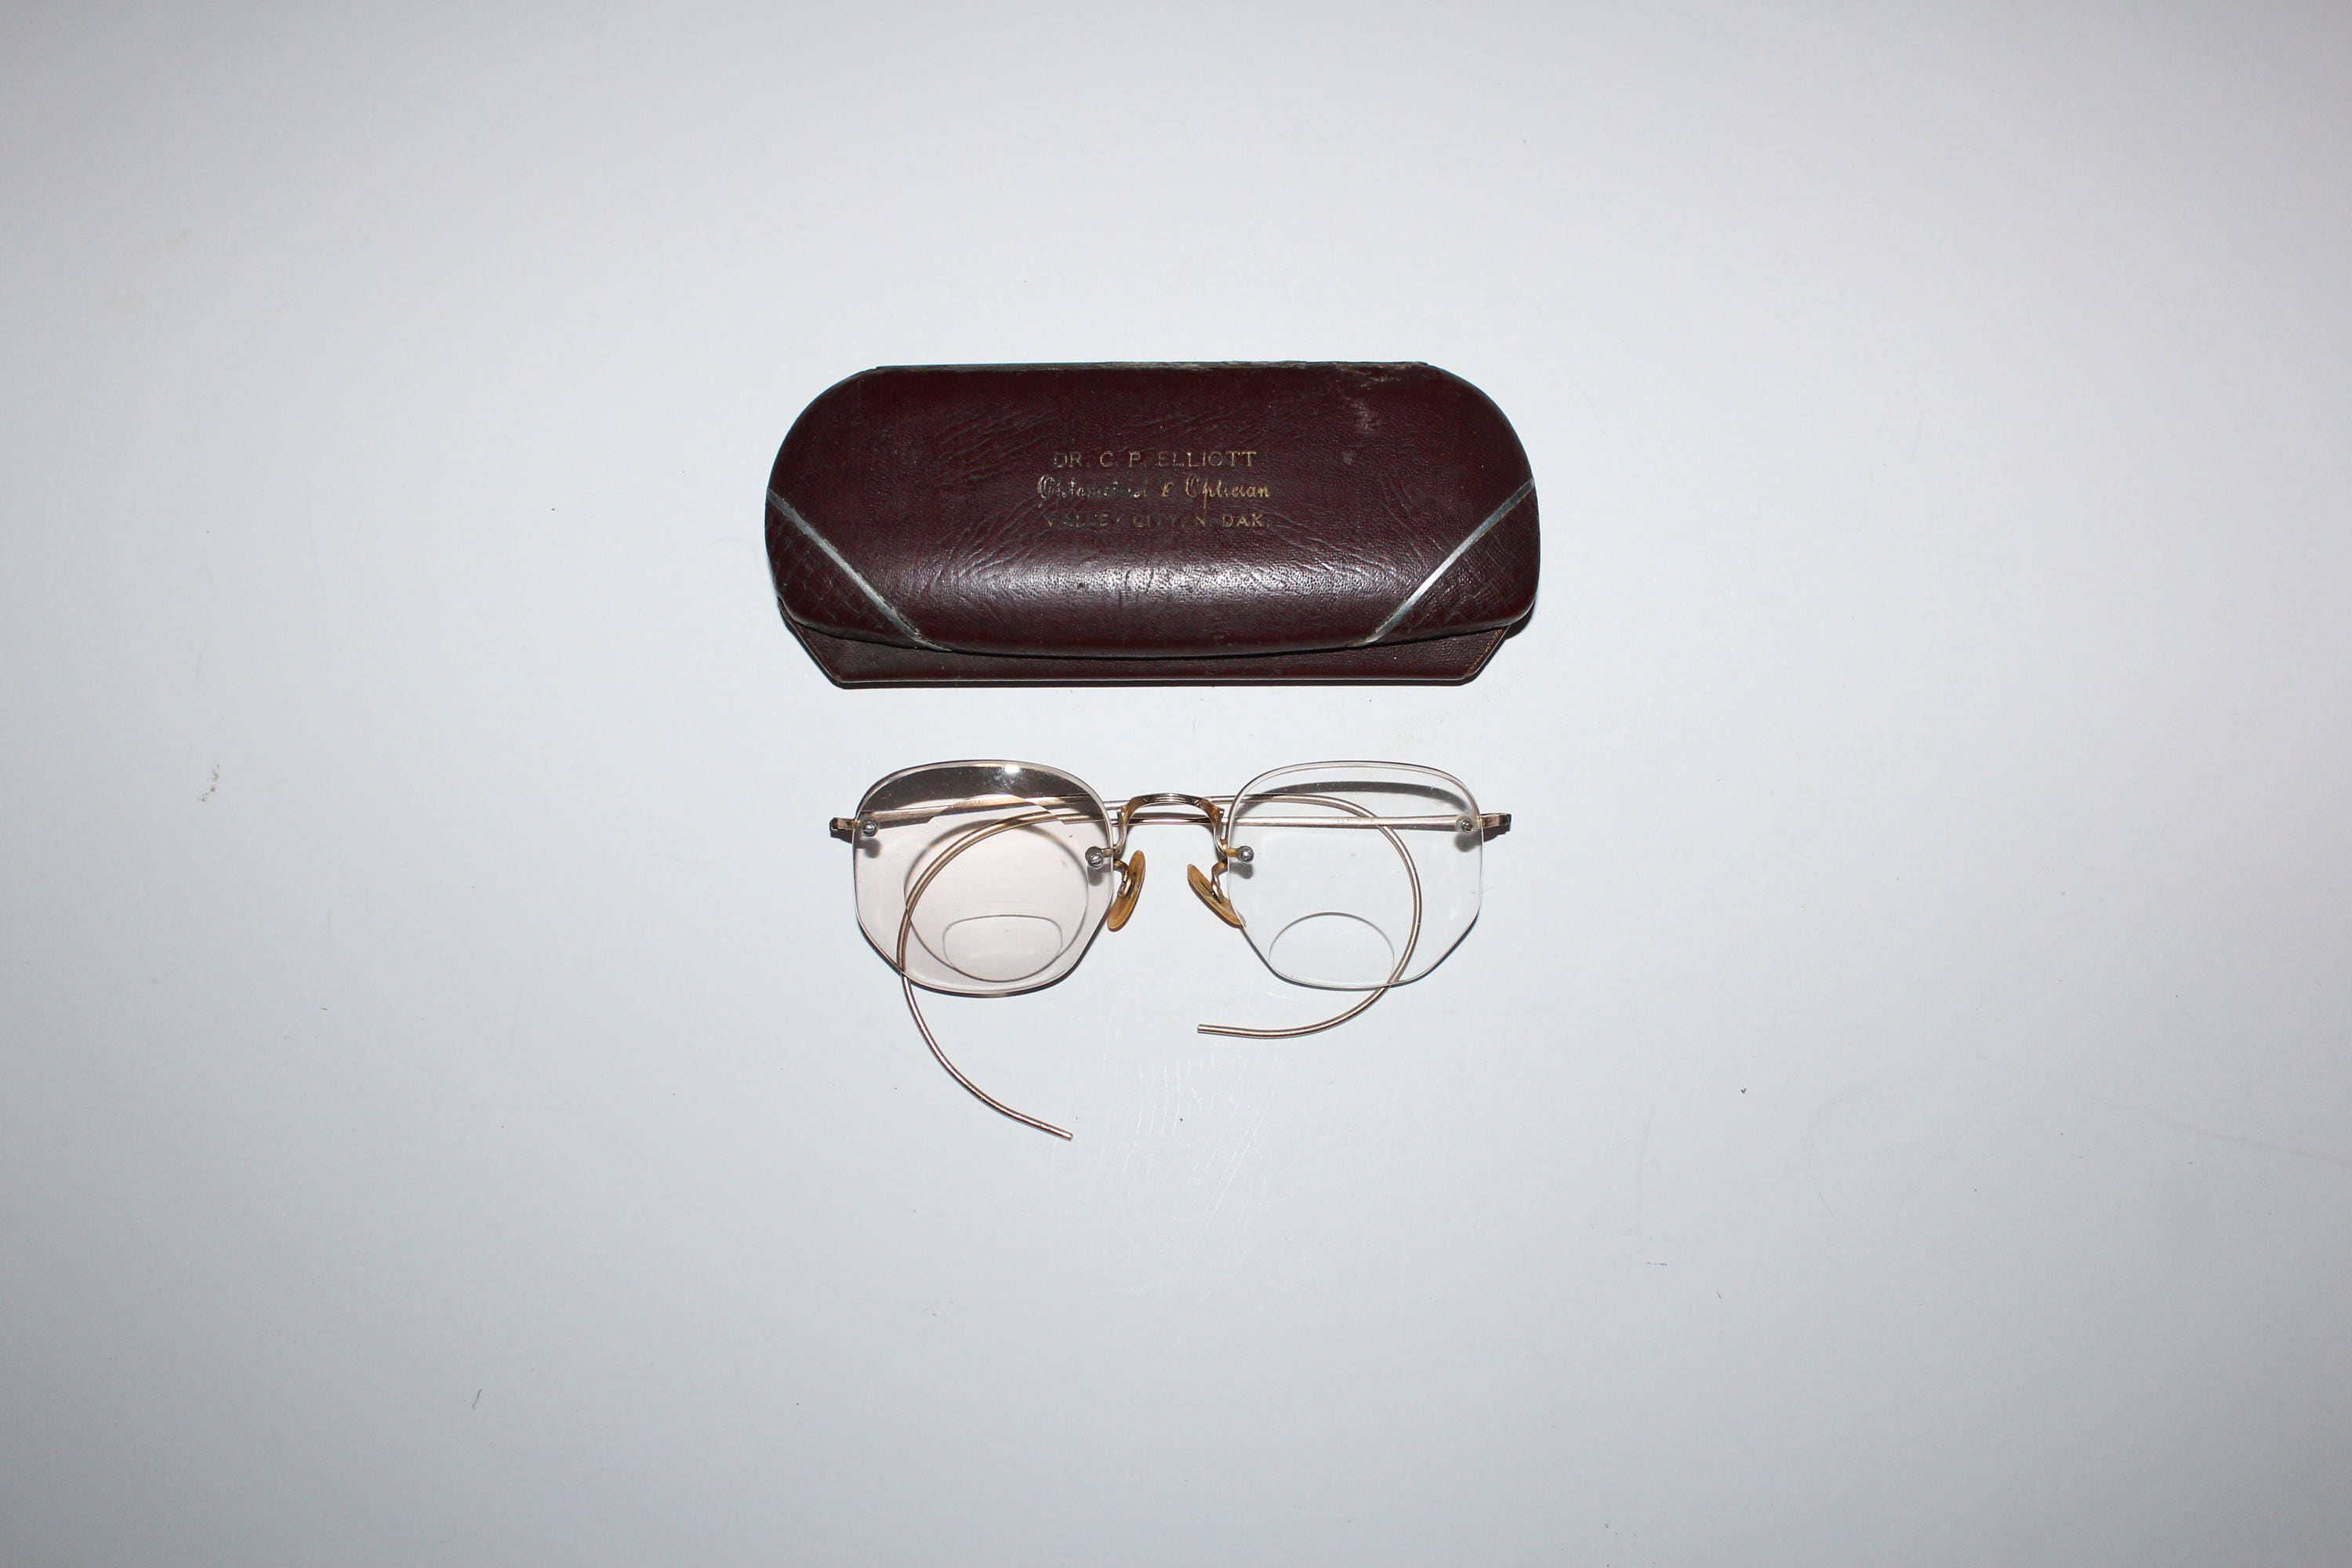 Antique Eyeglasses by Shuron 10K Gold Filled Frames with Case